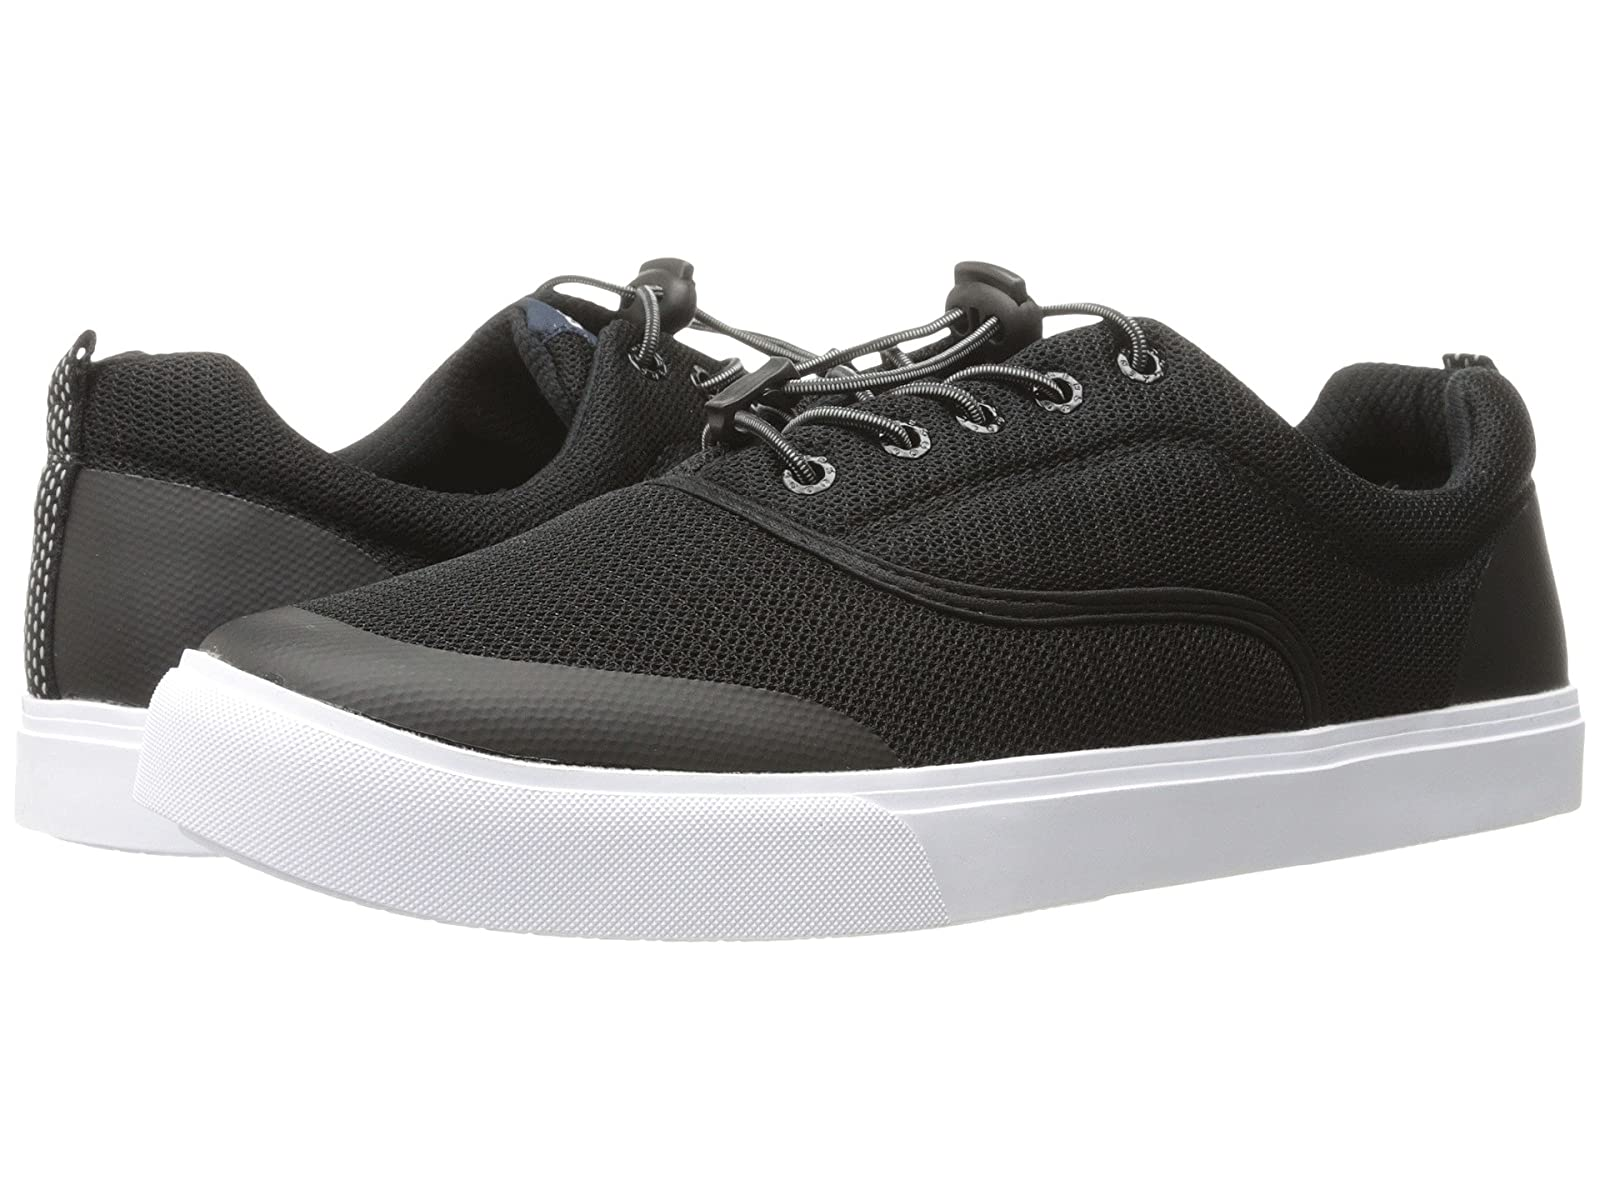 Dockers ReedsportCheap and distinctive eye-catching shoes